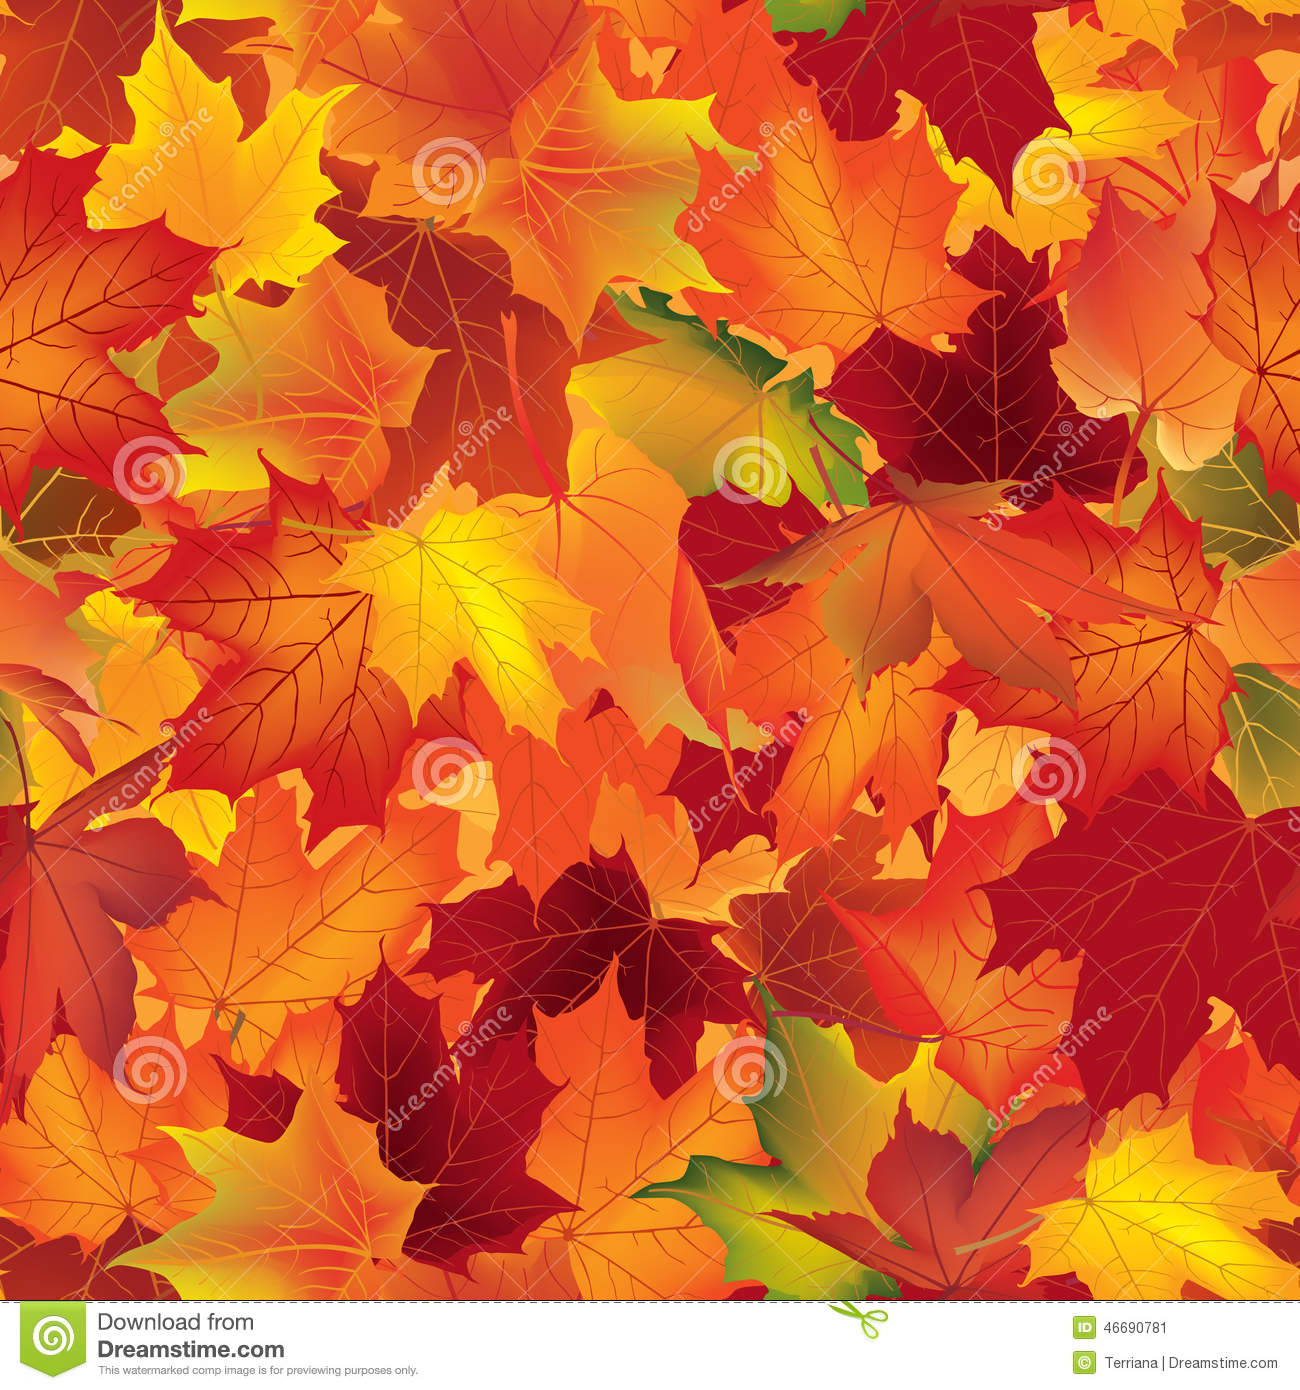 Falls Hd Wallpaper Free Download Autumn Texture Fall Pattern Wallpaper With Maple Leaves